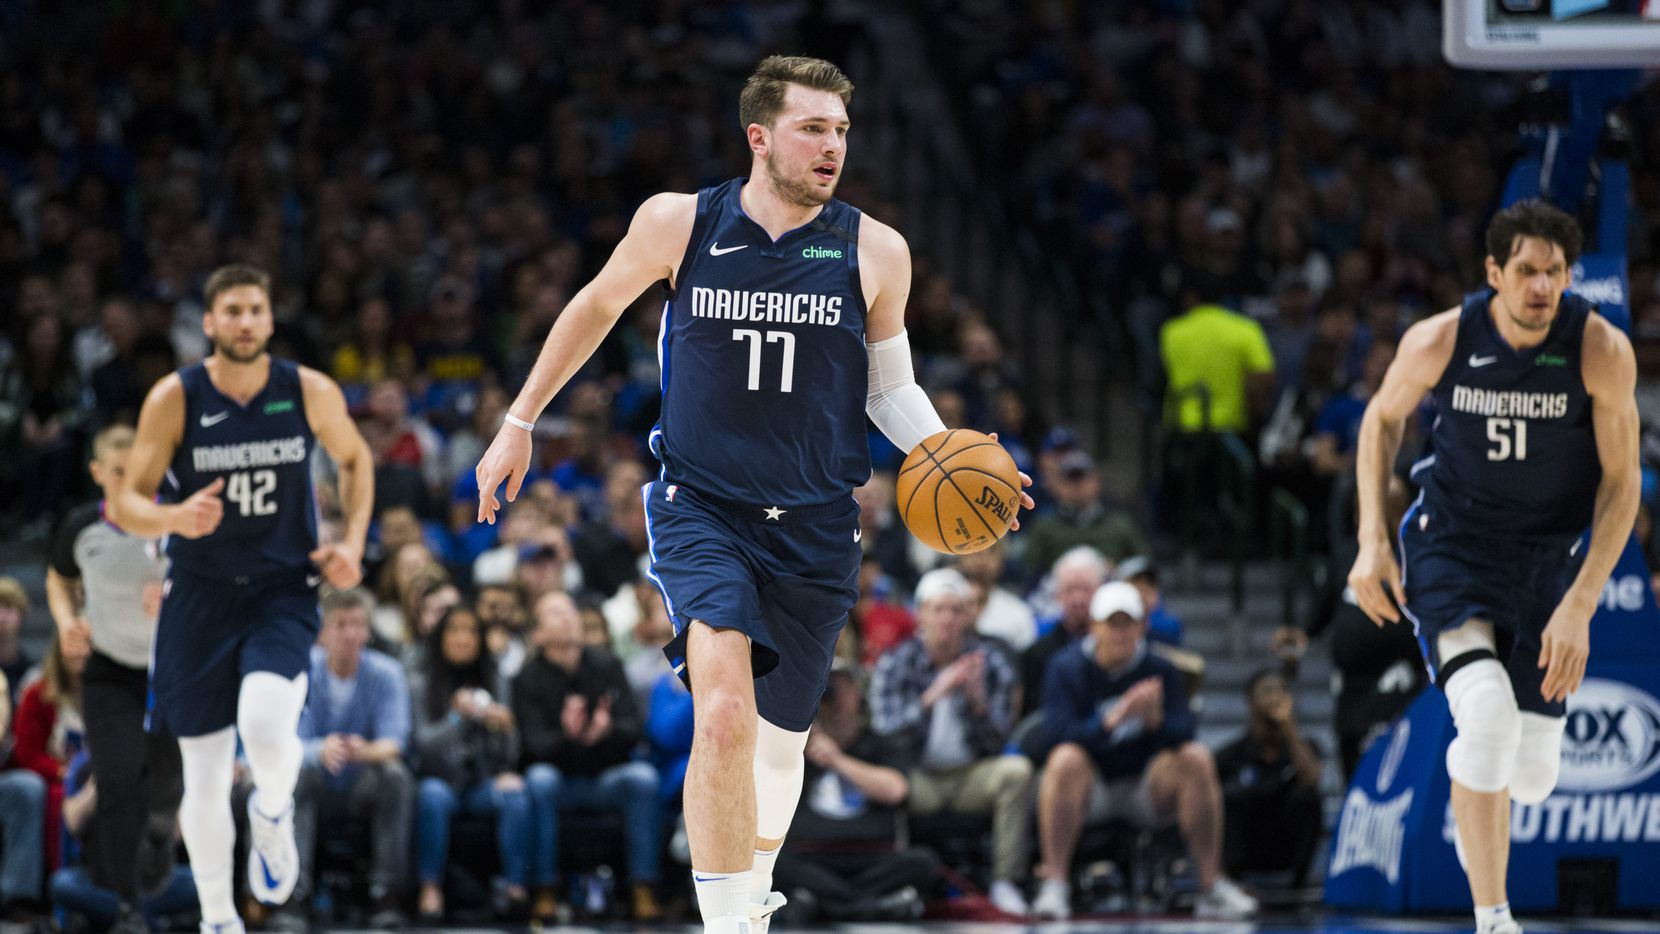 Dallas Mavericks guard Luka Doncic (77) takes the ball down the court during the second quarter of an NBA game between the Indiana Pacers and the Dallas Mavericks on Sunday, March 8, 2020 at American Airlines Center in Dallas.